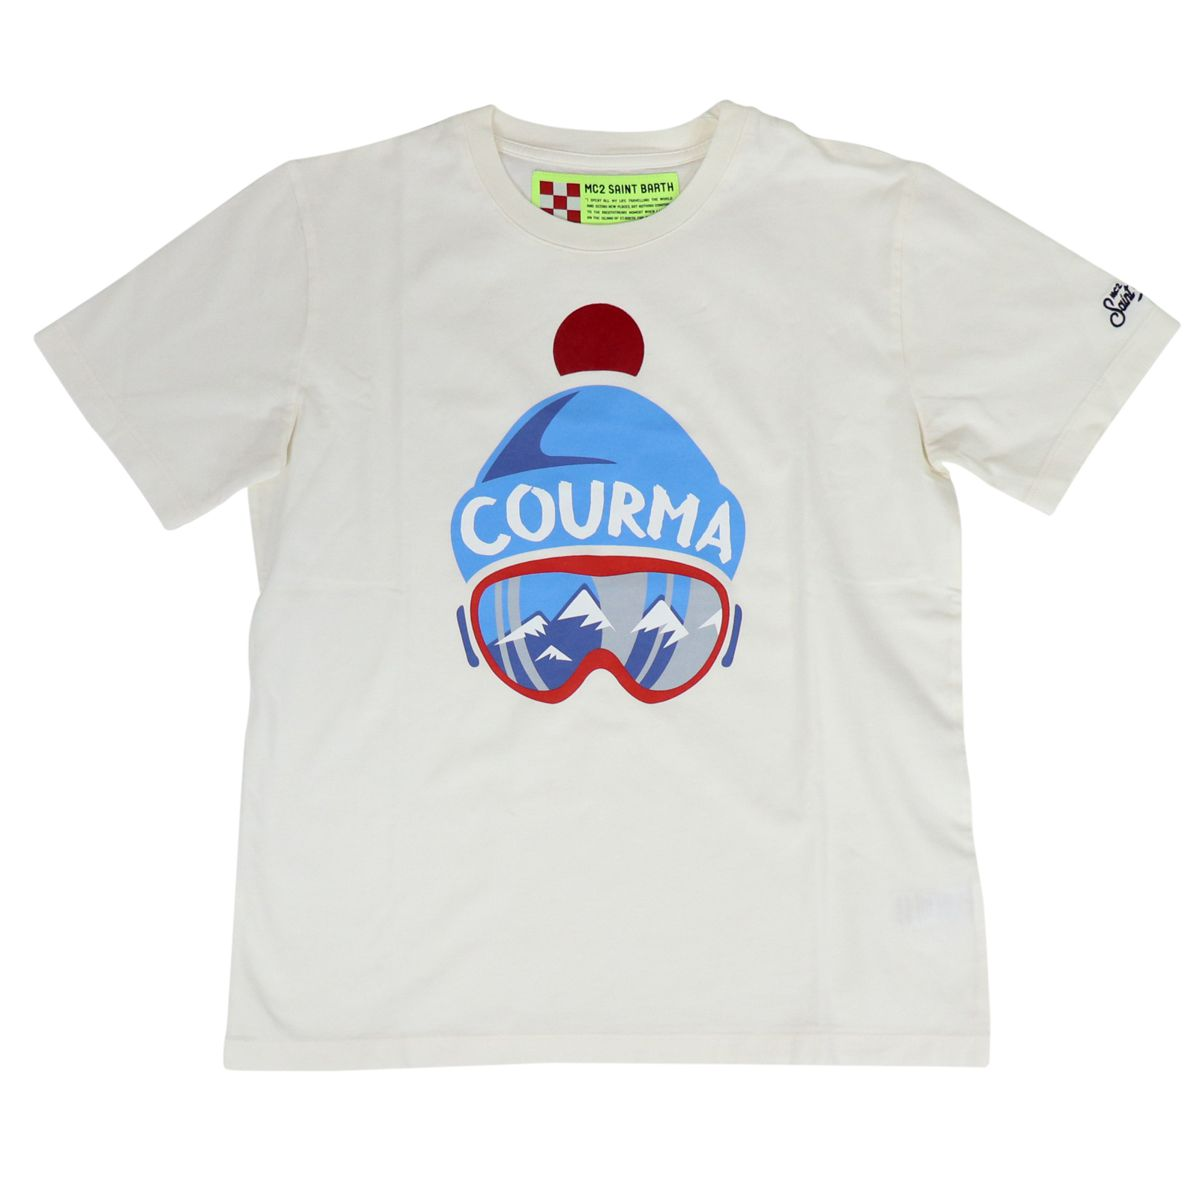 Short sleeve cotton t-shirt with front print Cream MC2 Saint Barth